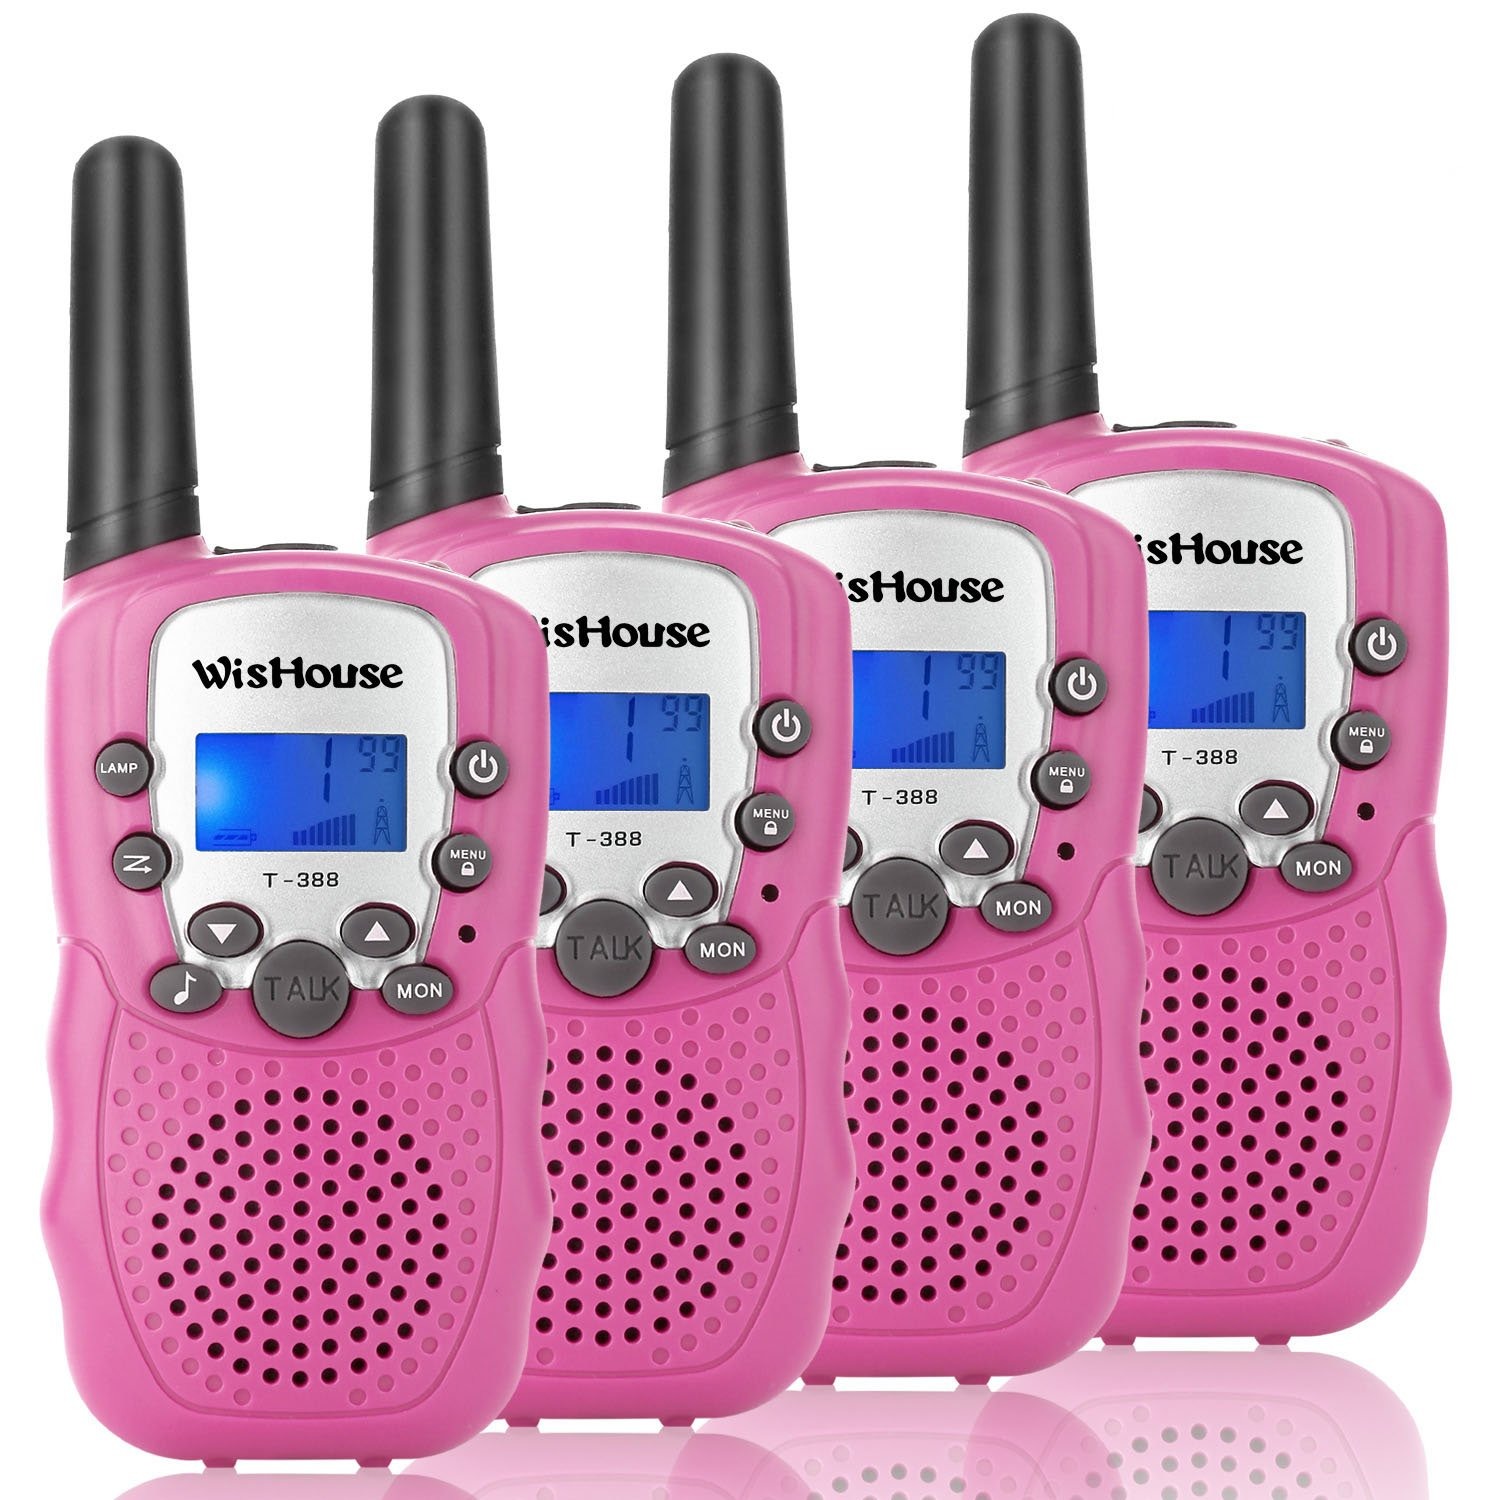 Wishouse Walkie Talkie Kids Toy Set,Best Gifts Easy use Two Way Radios for Girls, 22 Chanels 3 Miles Long Range Cool Vox walky Talky for Camping Hiking Fishing Outdoors(T388 Pink, 2 Pairs) by Wishouse (Image #1)